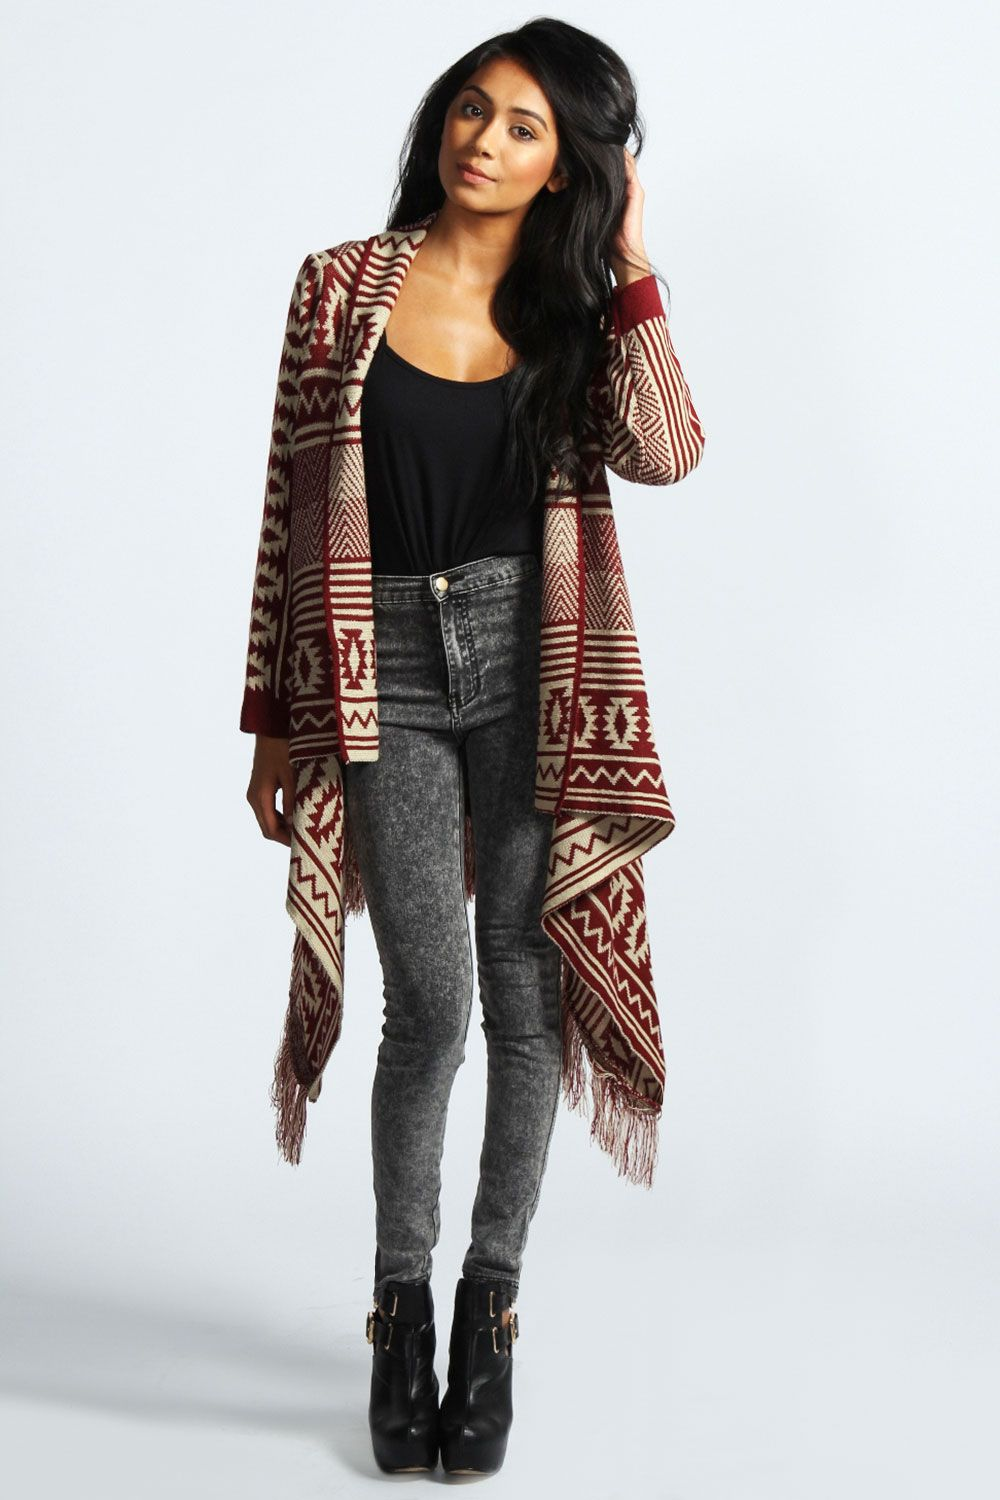 Adele Tassel Blanket Waterfall Cardigan at boohoo.com | EMPRESS ...